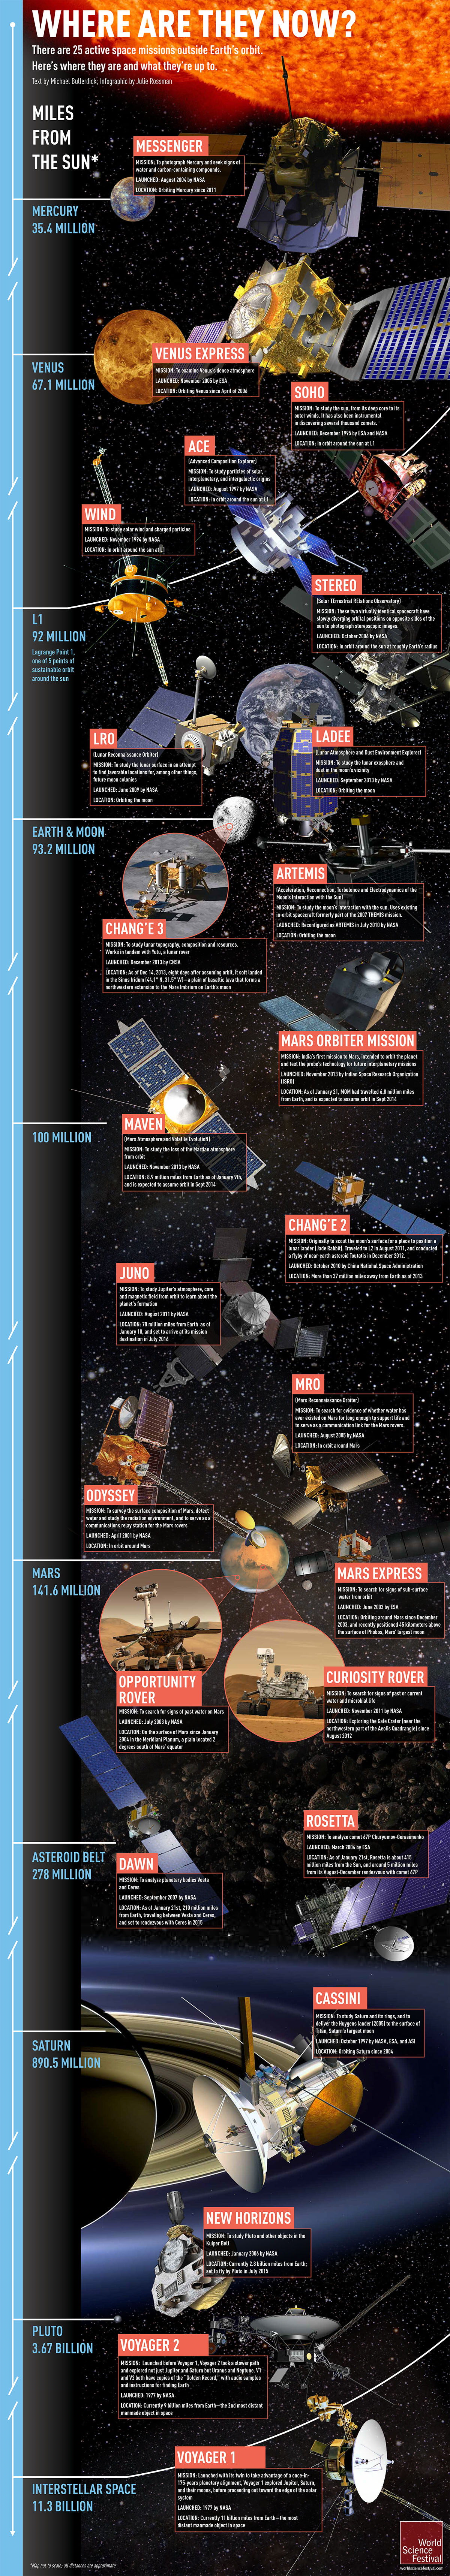 Active_Space_Missions_FTP-1